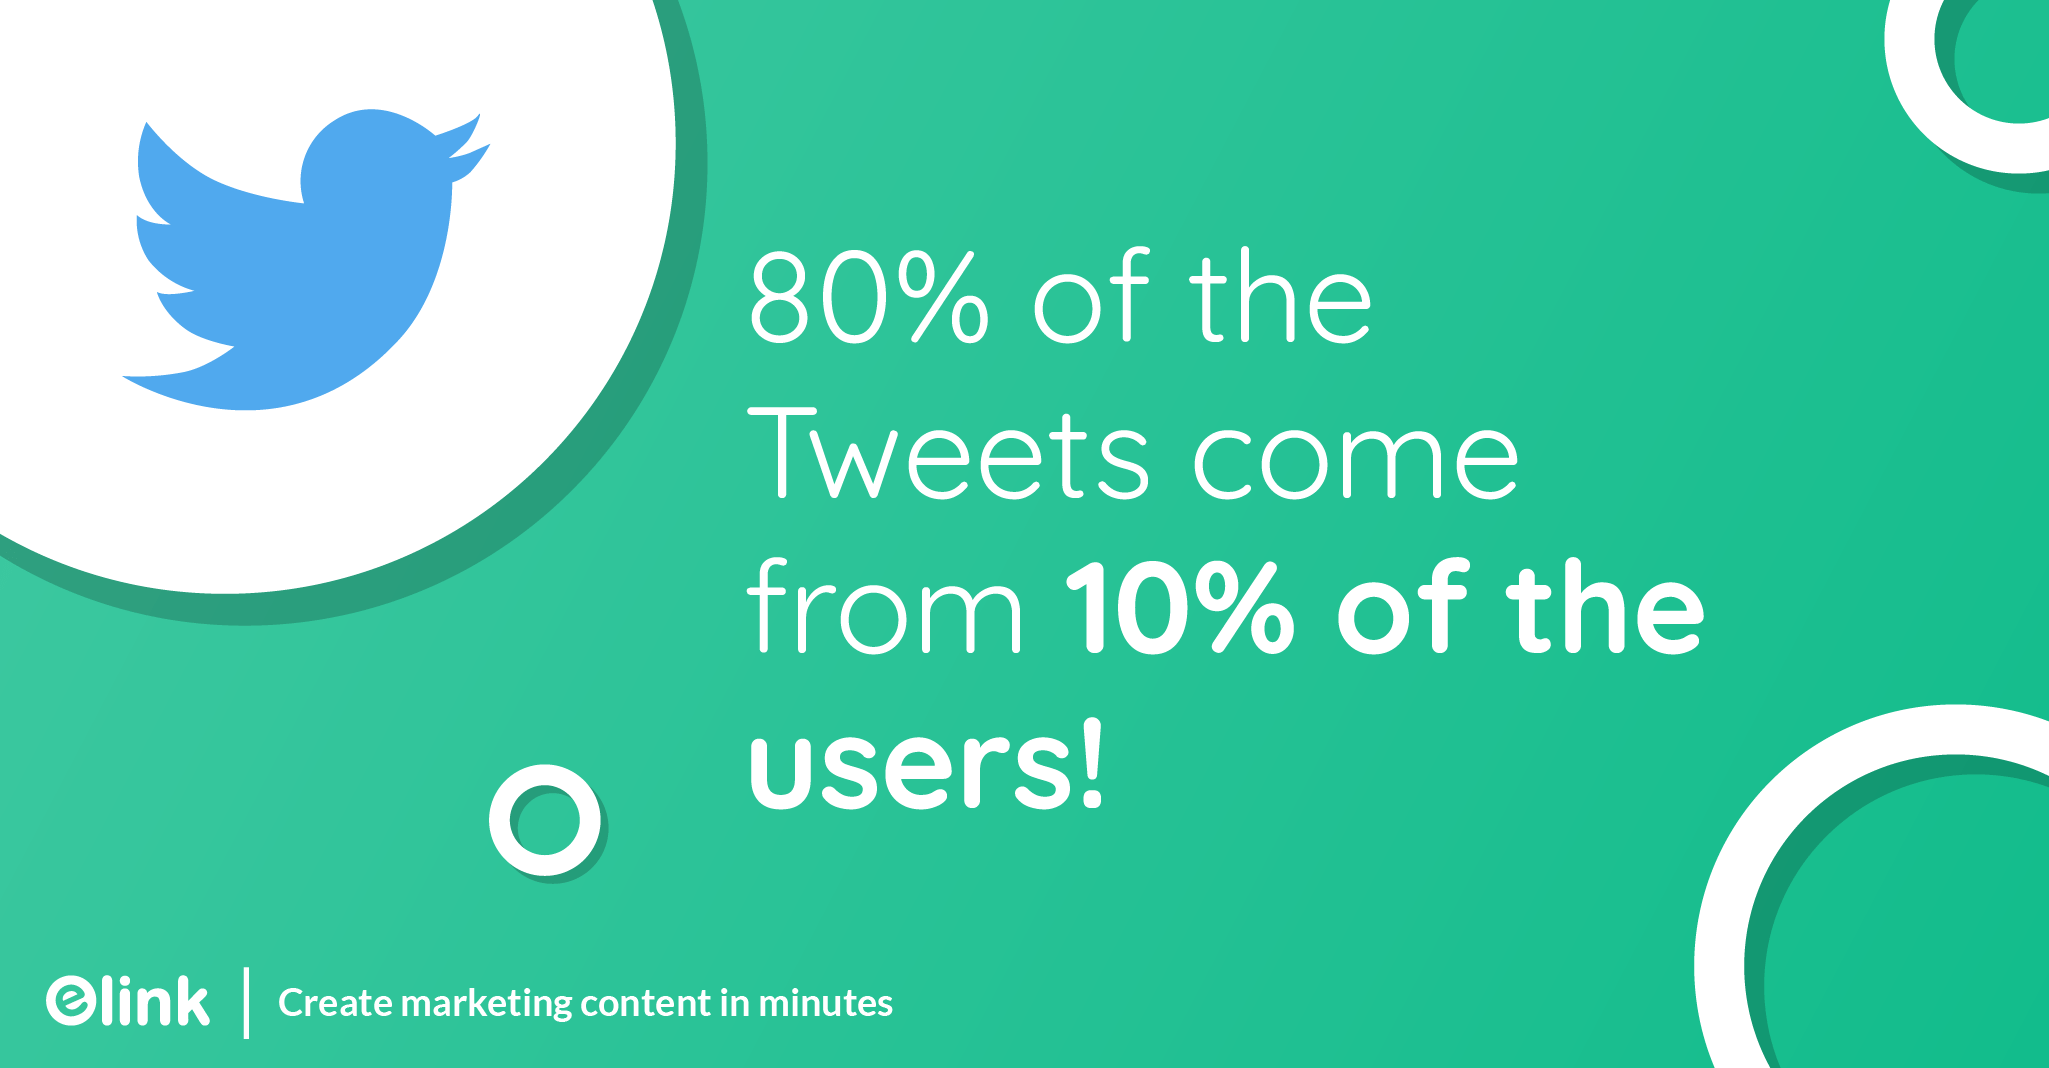 80% of the Tweets come from 10% of the users!